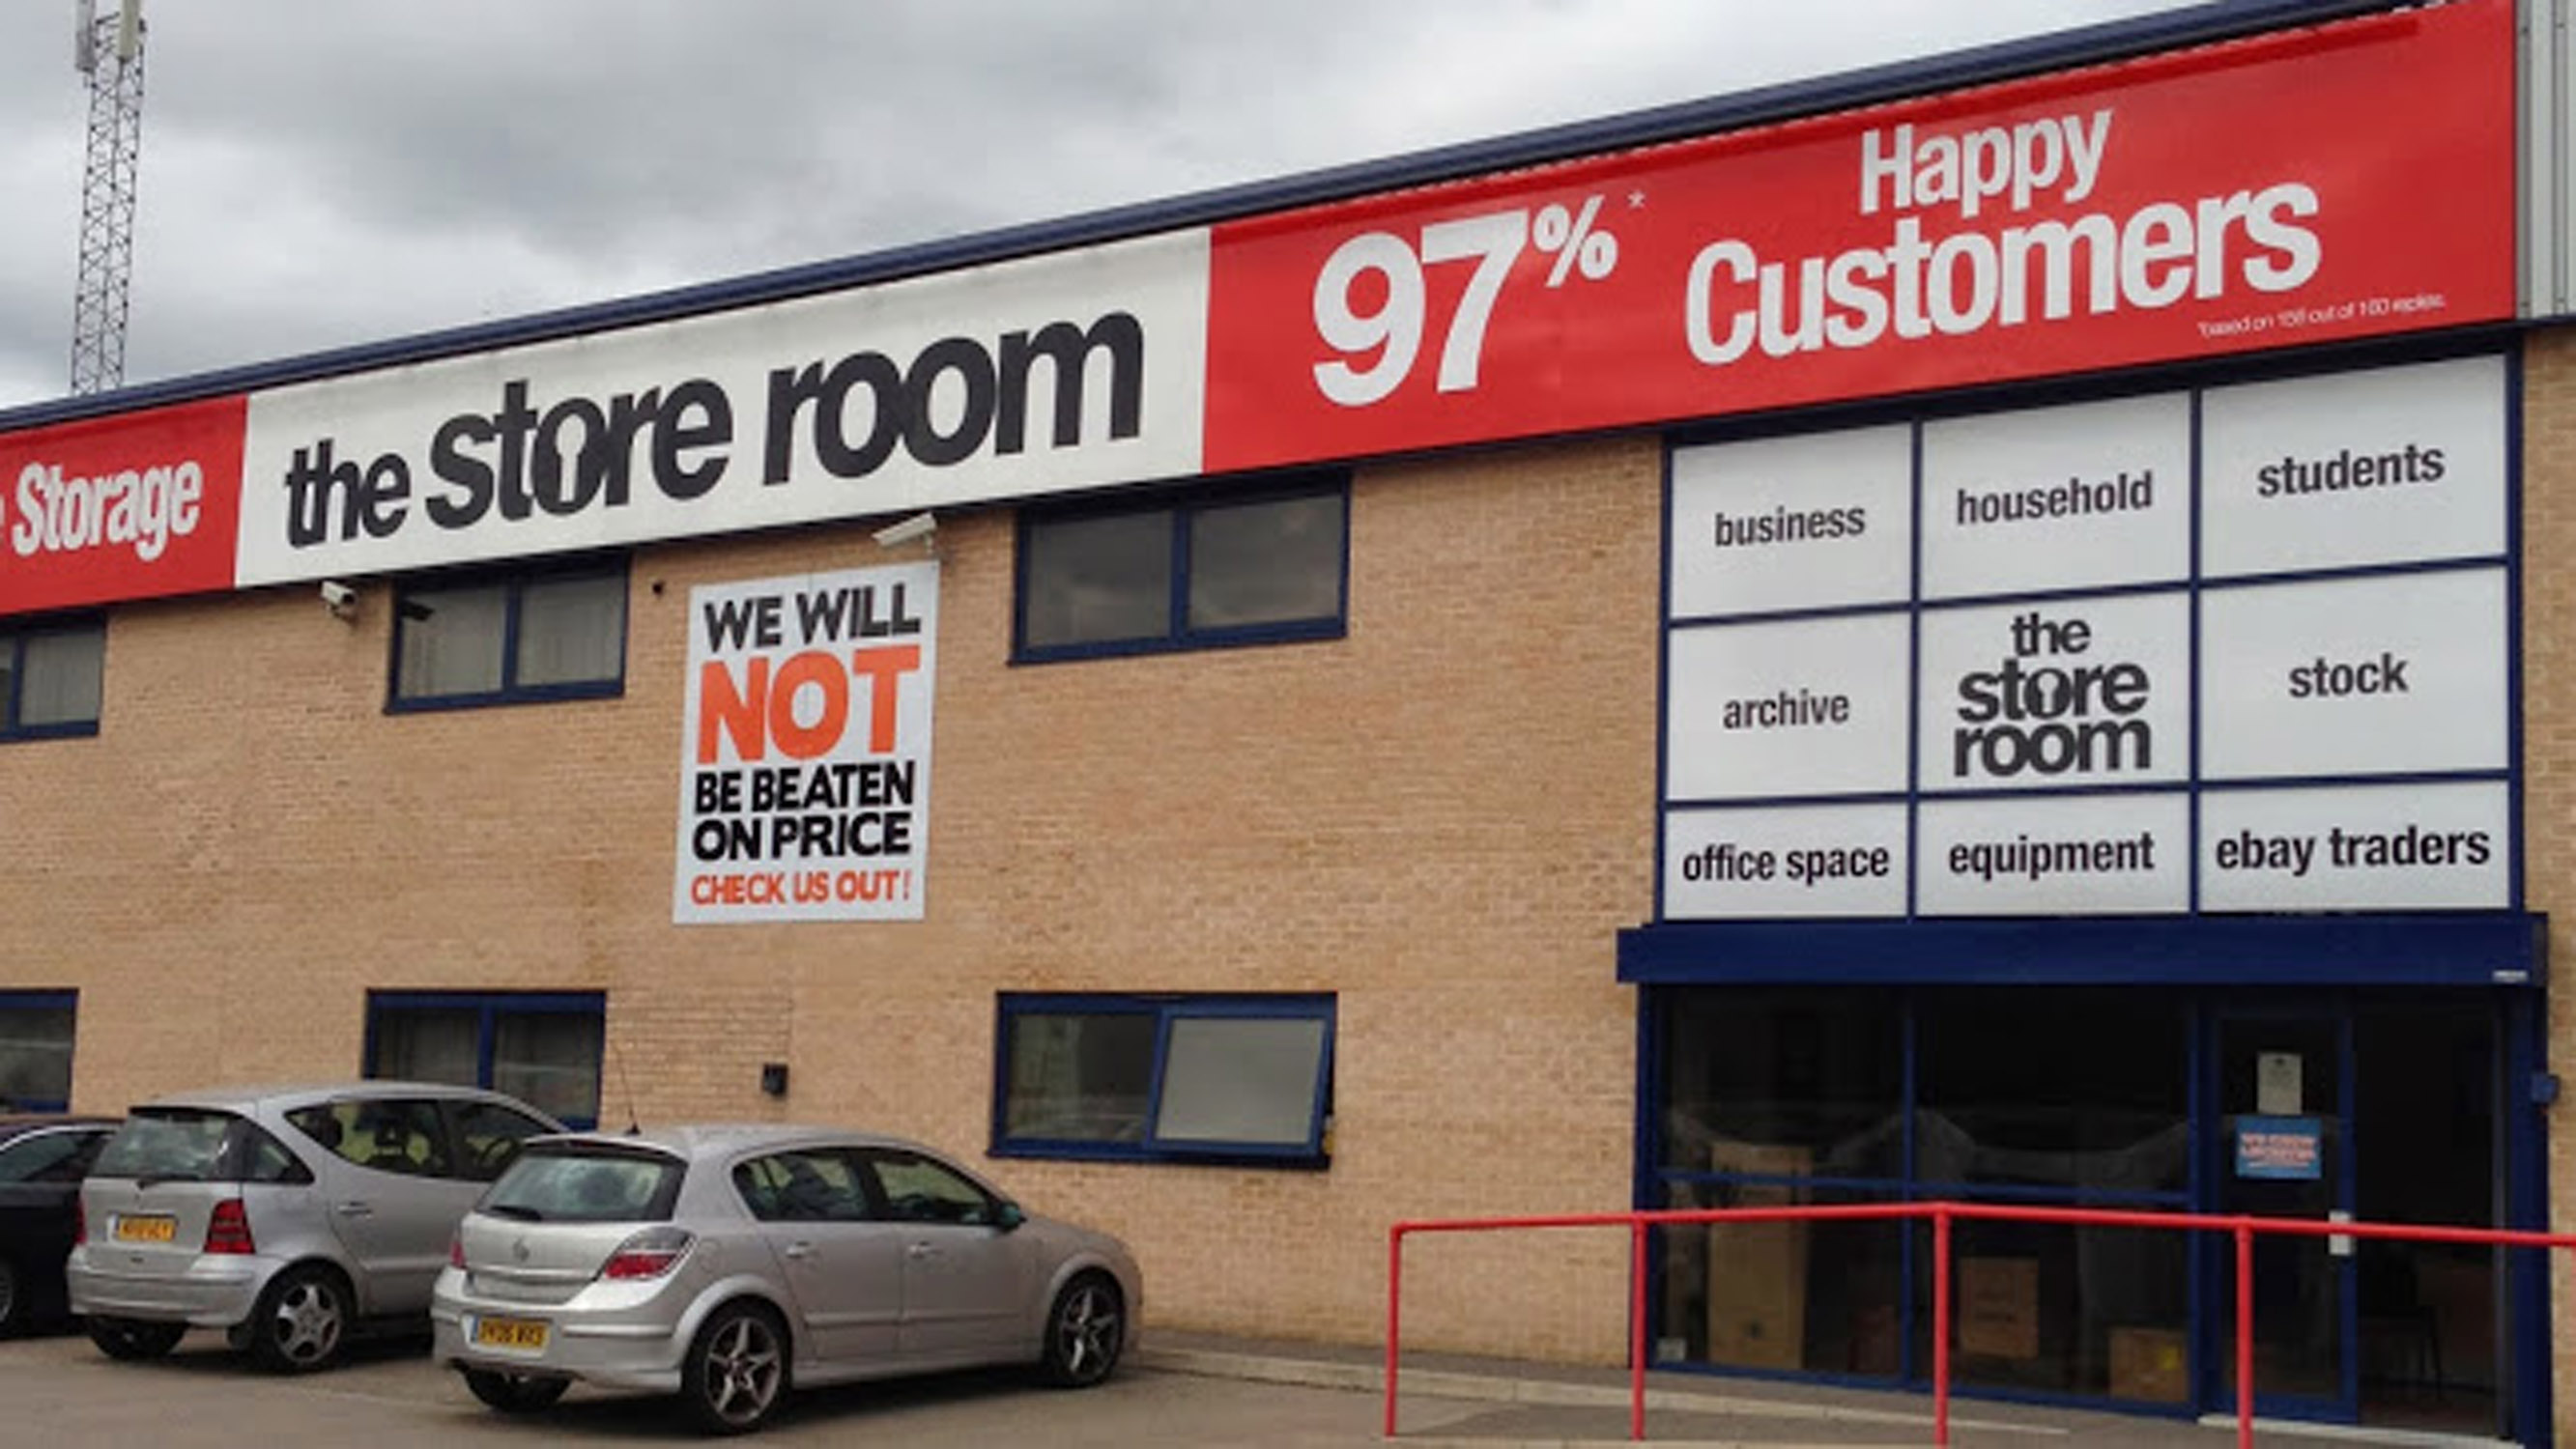 The Store Room Leicester Frontage